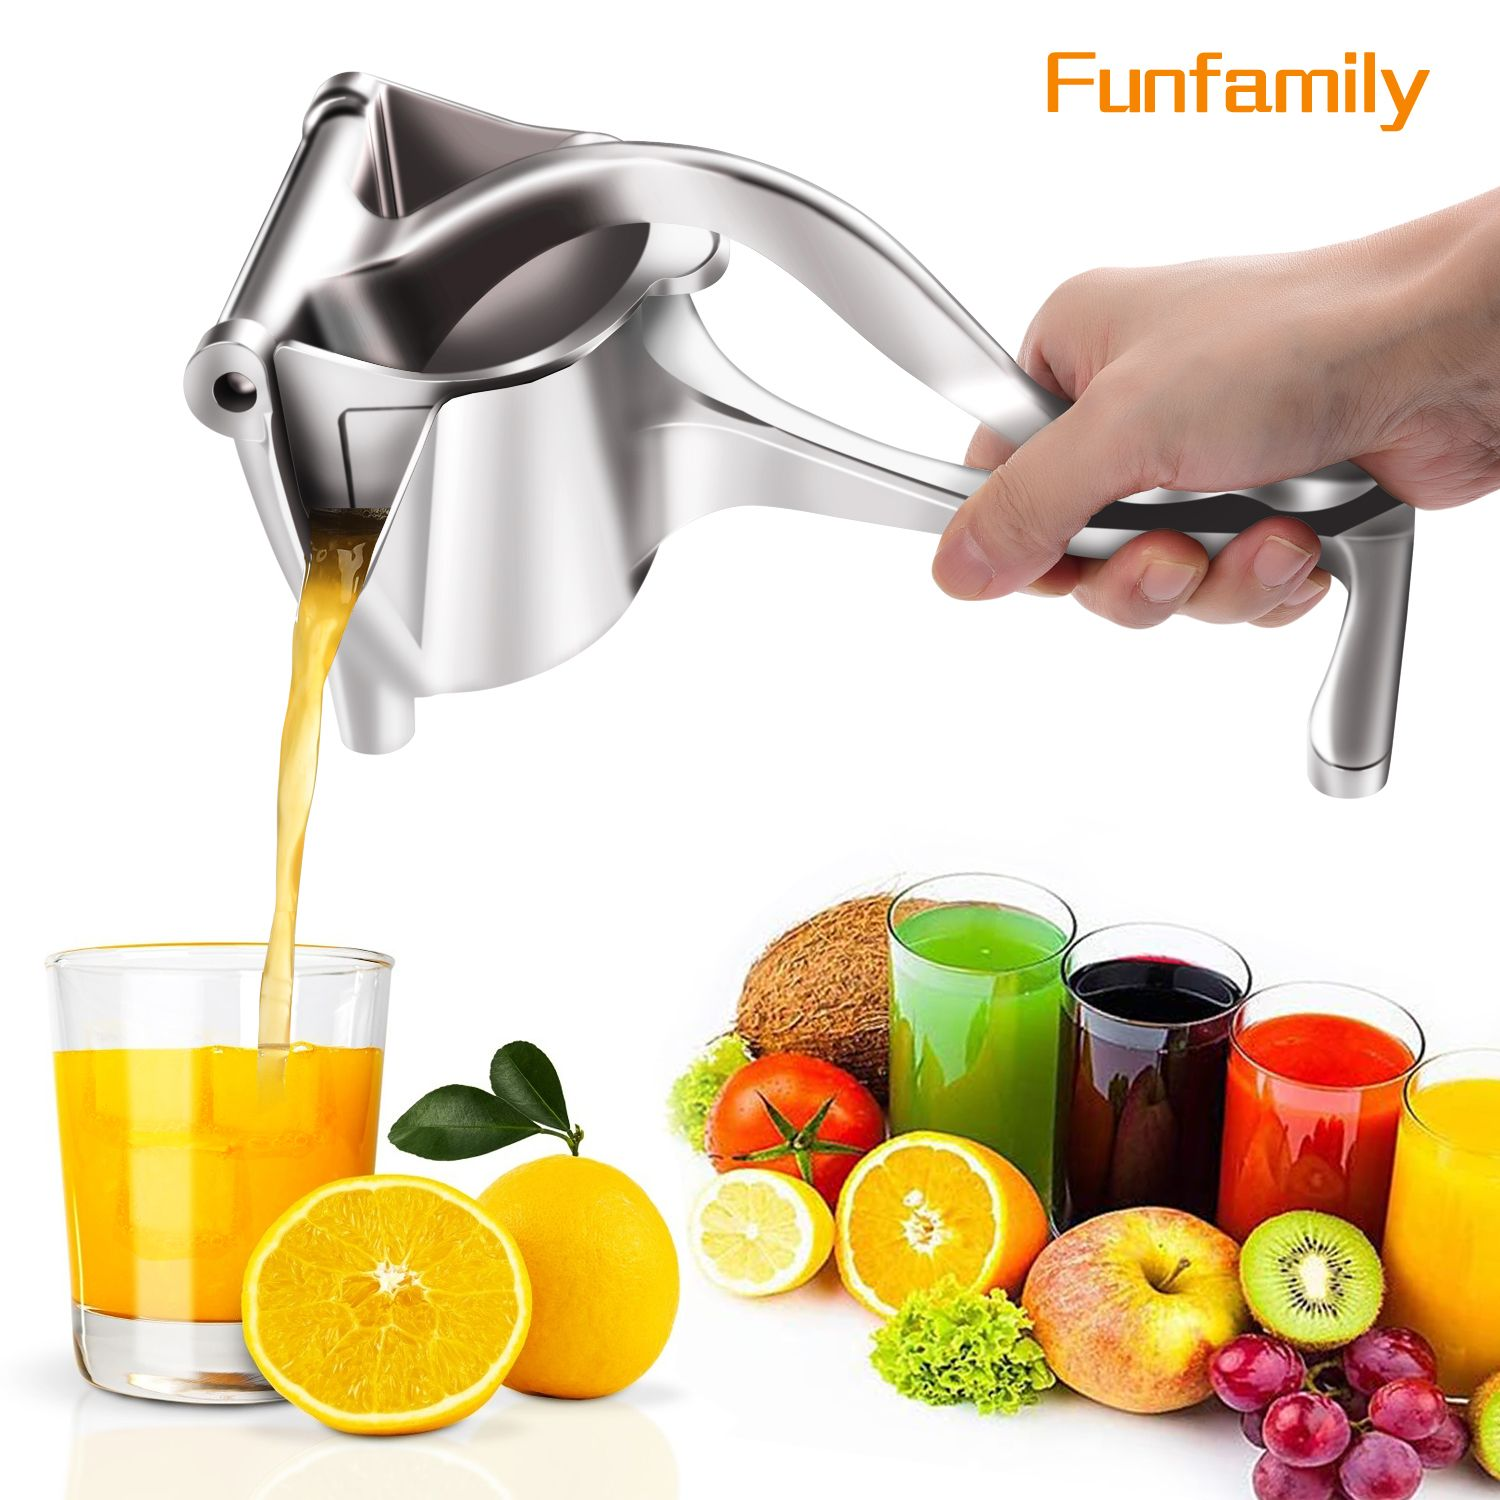 Manual Juice Squeezer Aluminum Alloy Hand Pressure Juicer Pomegranate Orange Lemon Sugar Cane Juice Kitchen Fruit Tool